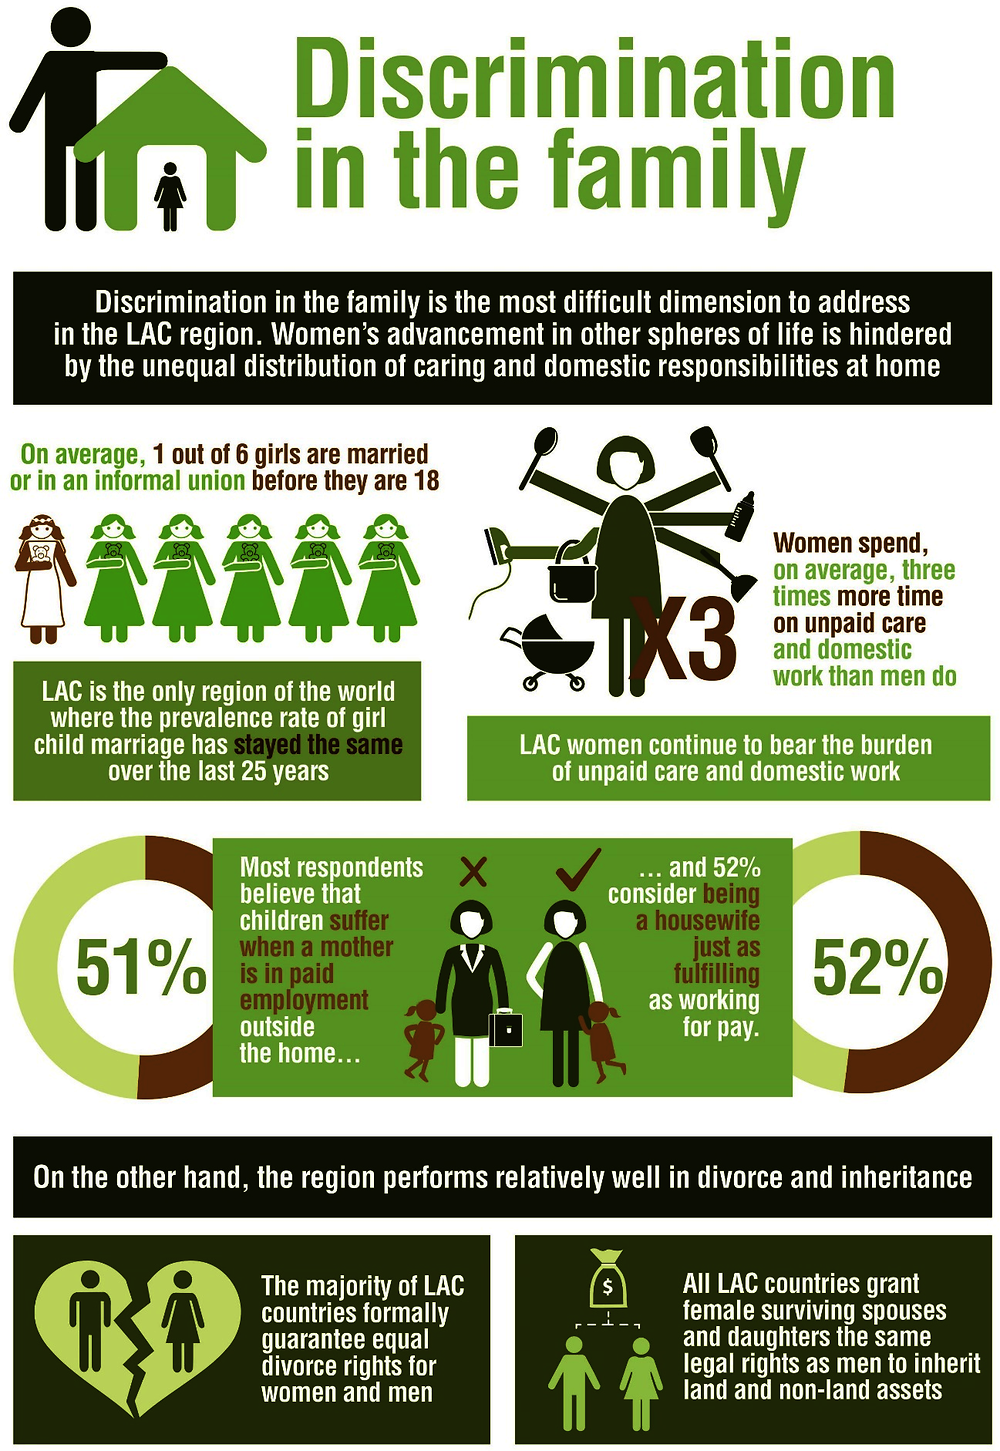 Infographic 3.1. Discrimination in the family